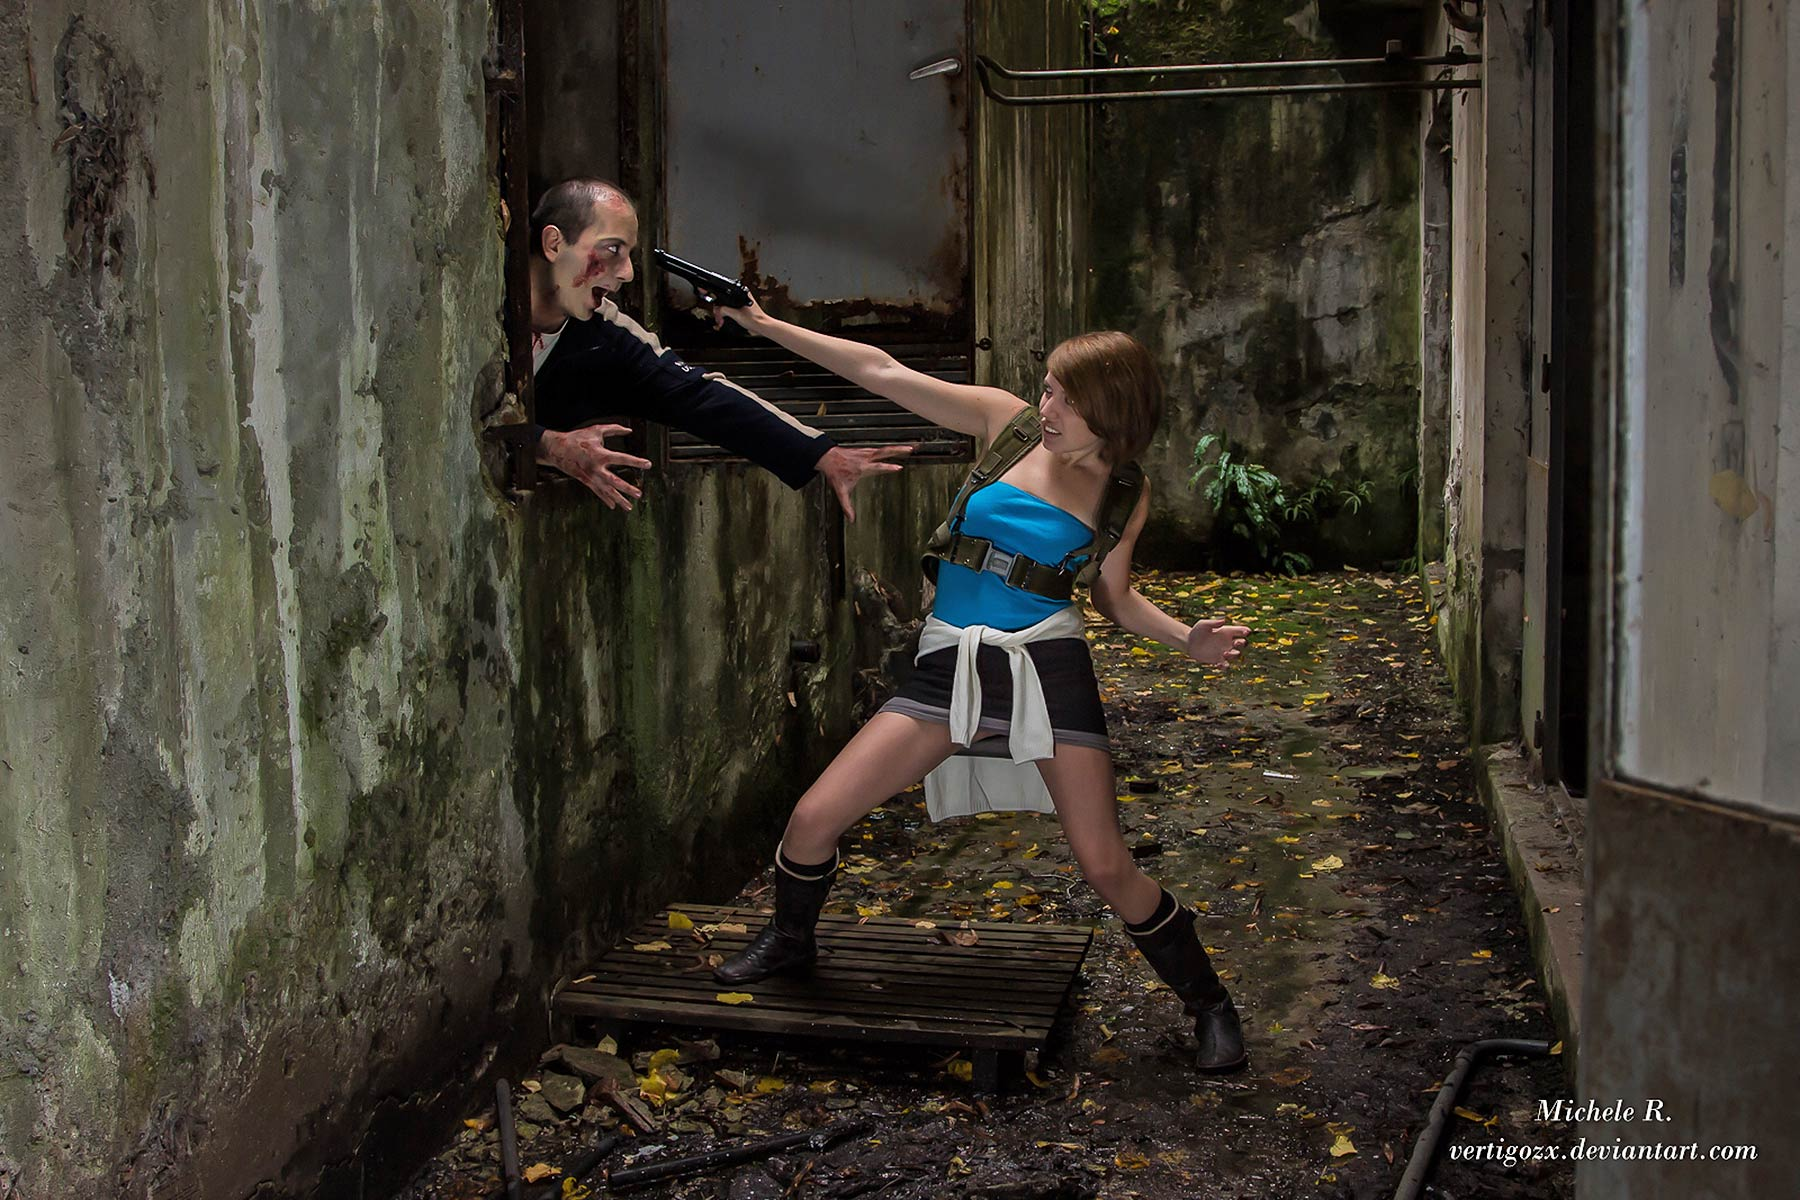 resident evil nemesis video game cosplay cosplay my game